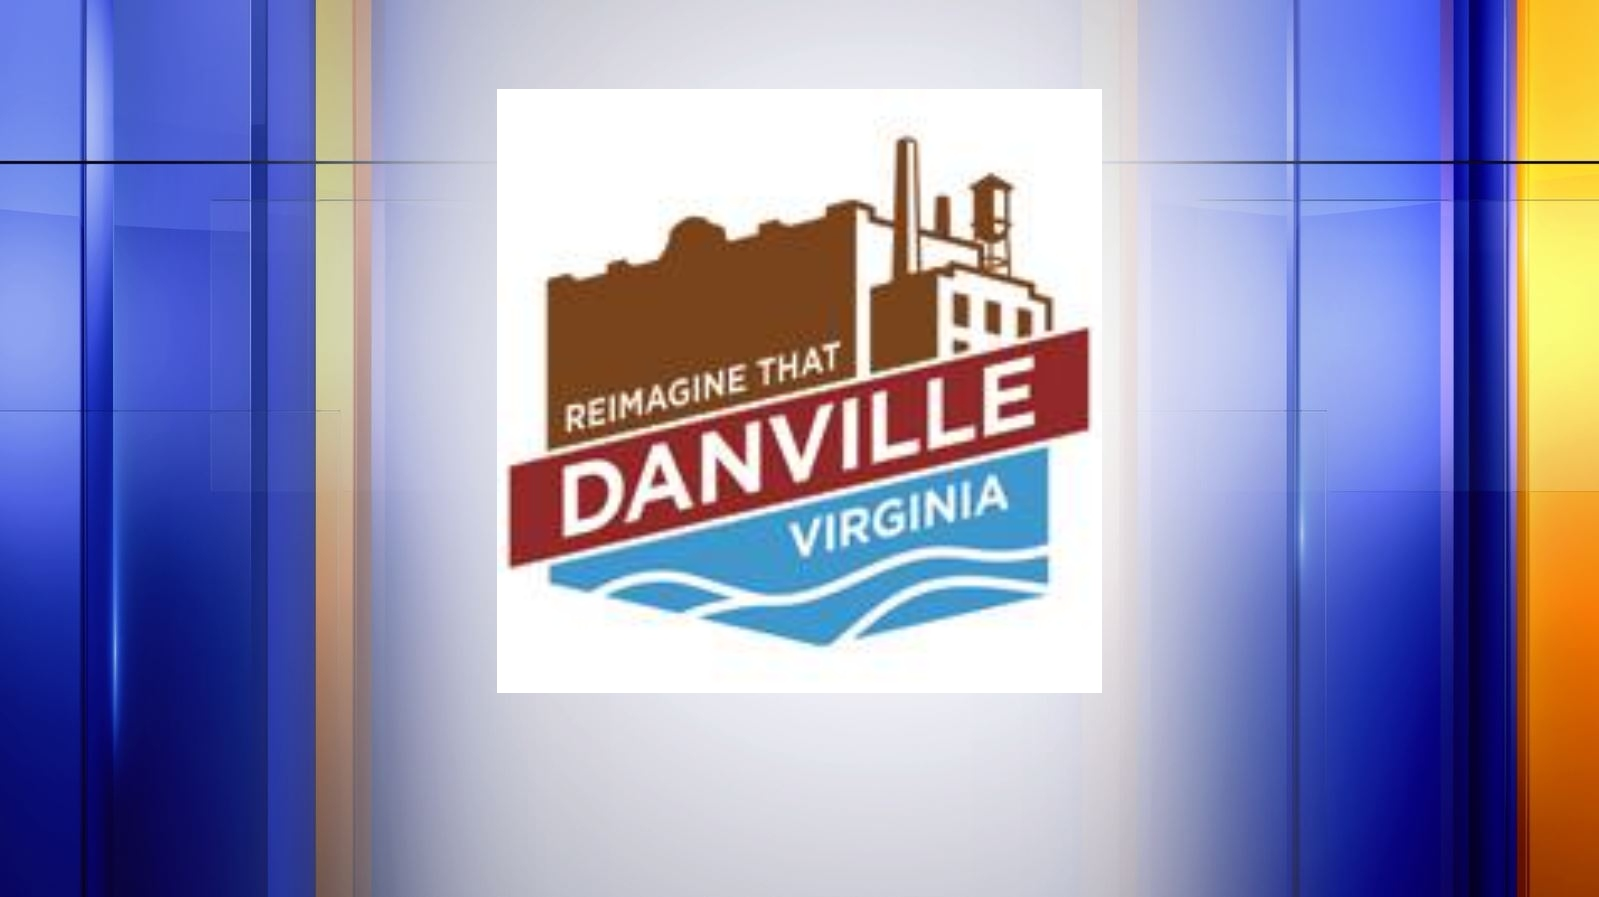 City of Danville will host a community meeting on Wednesday to gather input on a proposal that reduces travel lanes on Westover Drive.